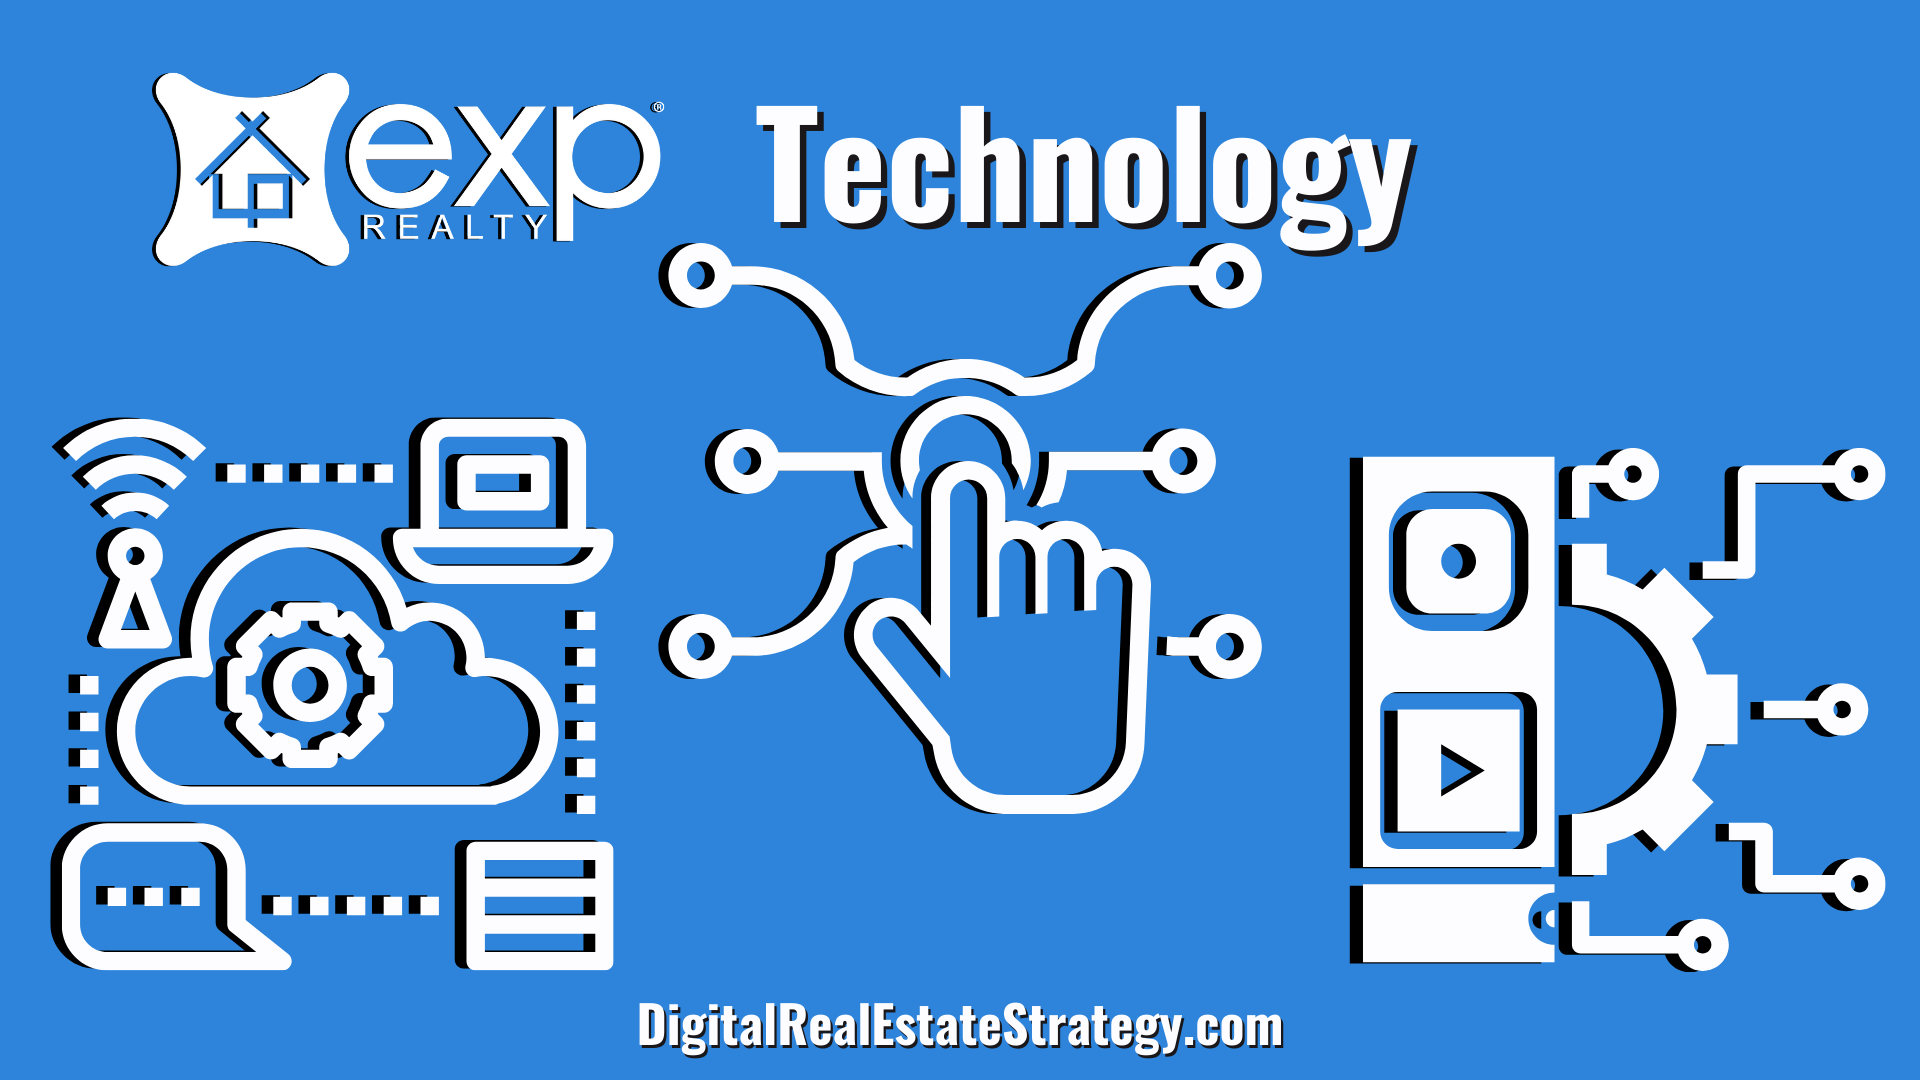 eXp Technology - KVCore CRM - eXp Realty Review - The Culture - Jerome Lewis - eXp Realty Philadelphia - PA - Digital Real Estate Strategy